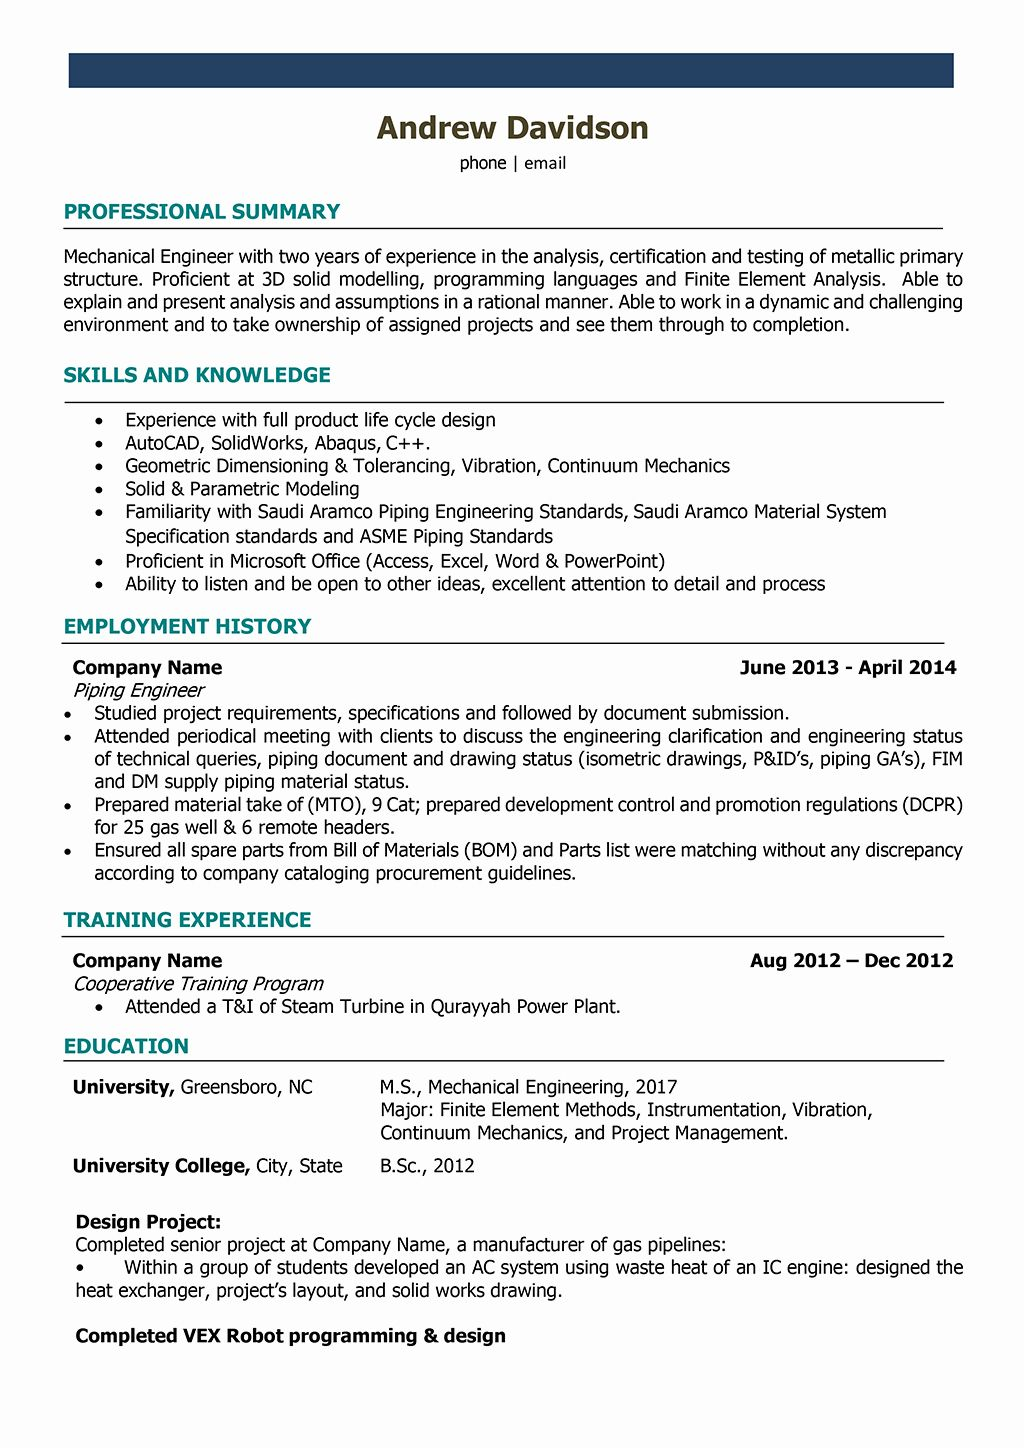 Mechanical Engineering Resume Templates Beautiful Mechanical Engineer Resume Samples Engineering Resume Templates Engineering Resume Mechanical Engineer Resume